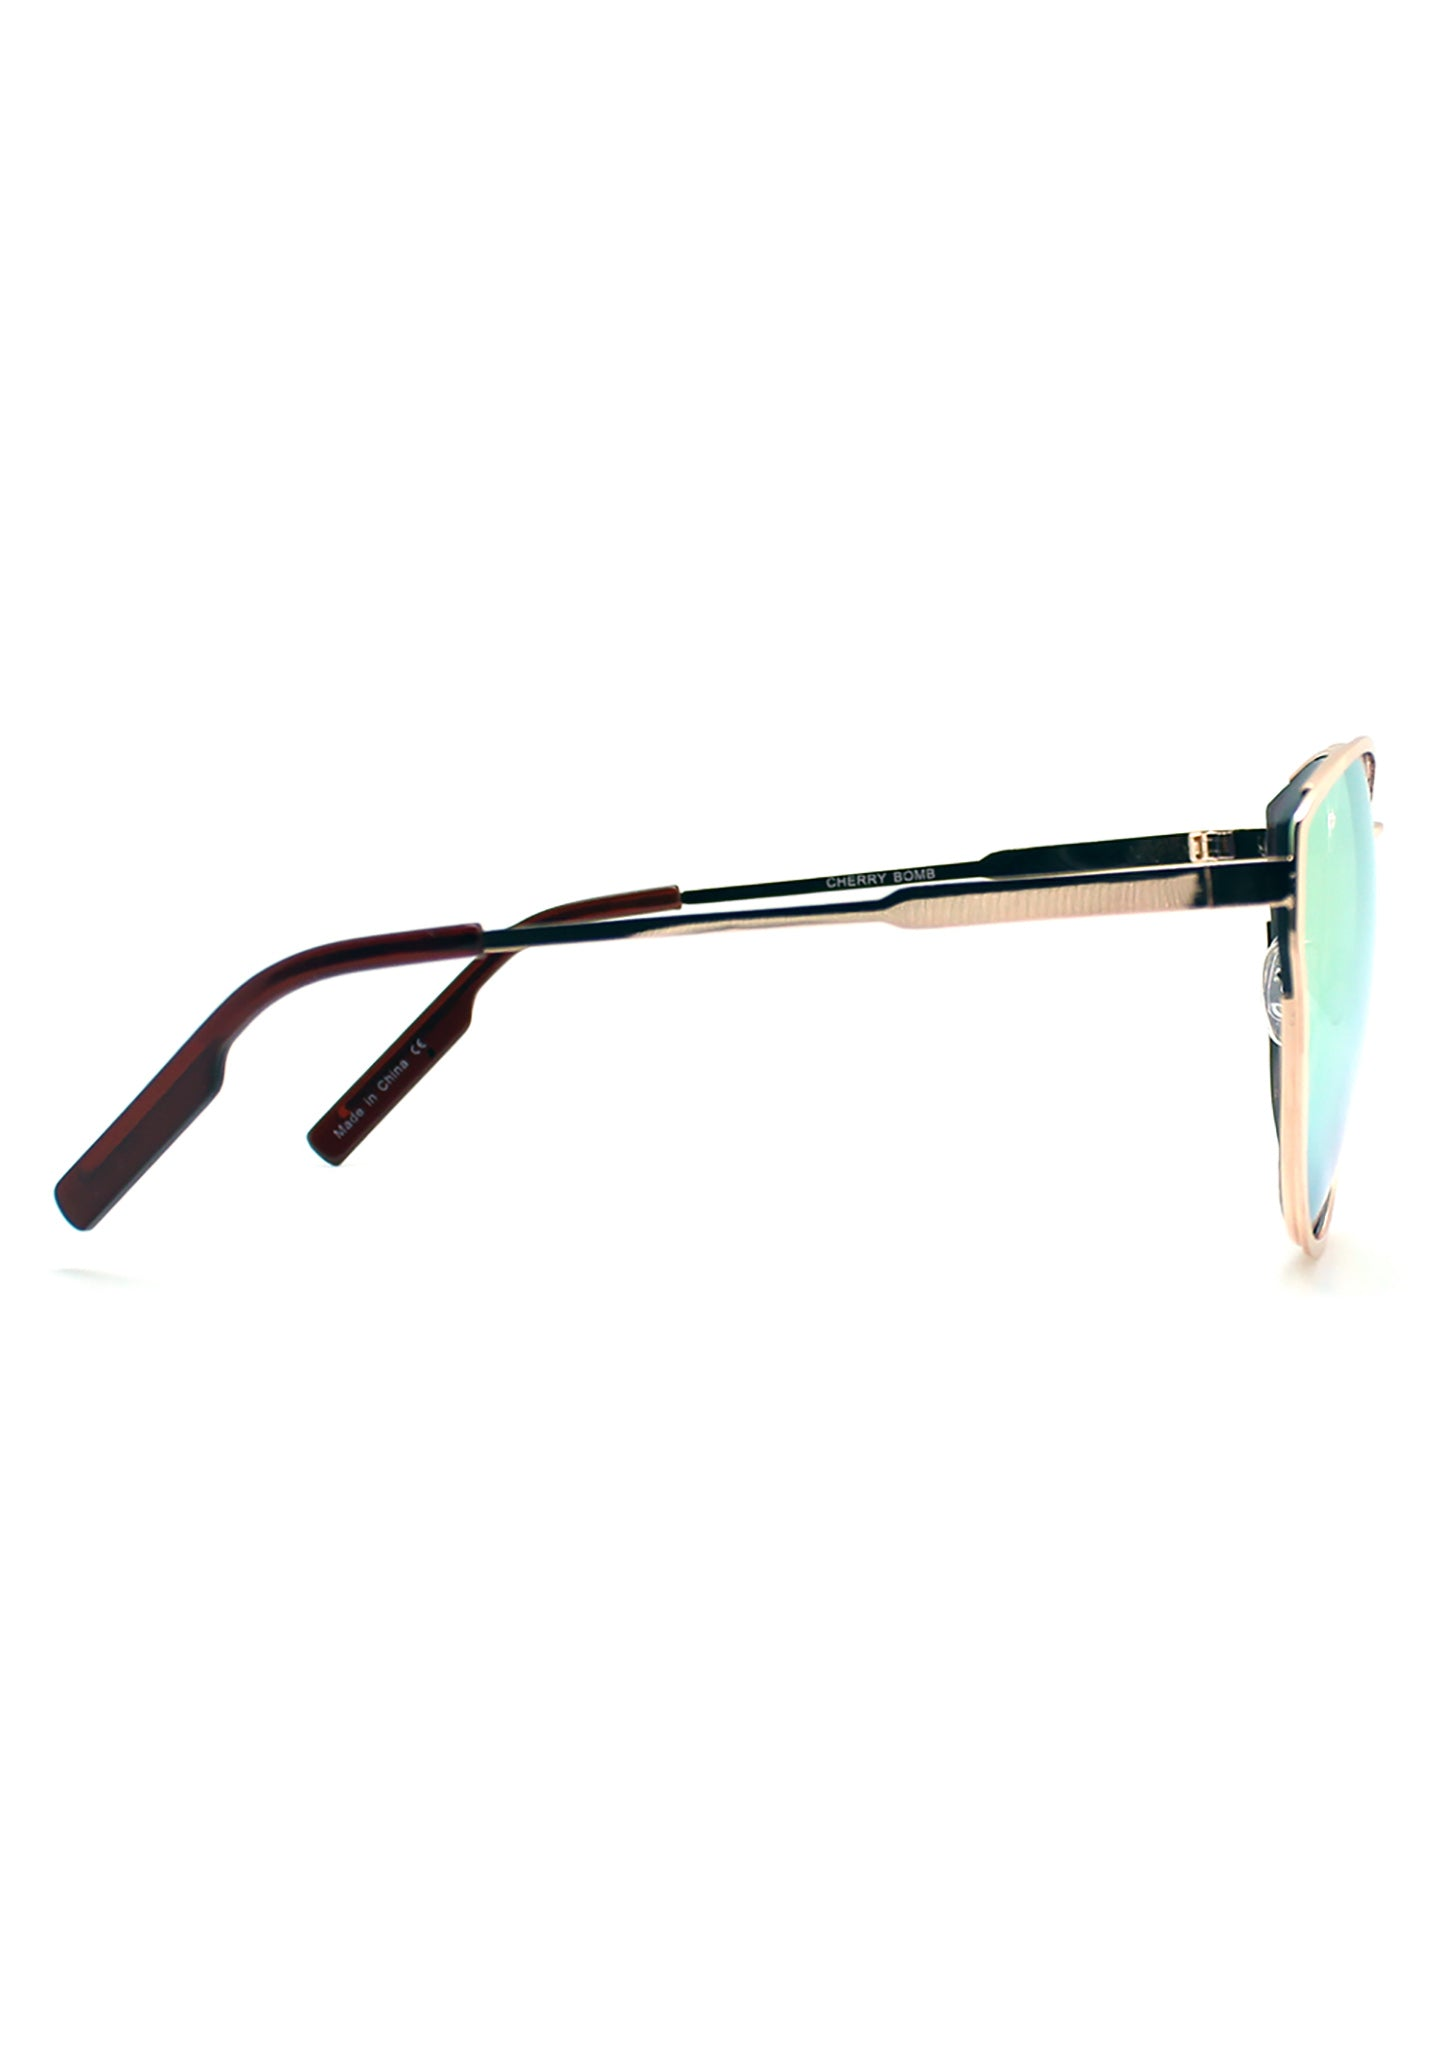 Quay Australia Cherry Bomb Sunglasses in Rose/Pink